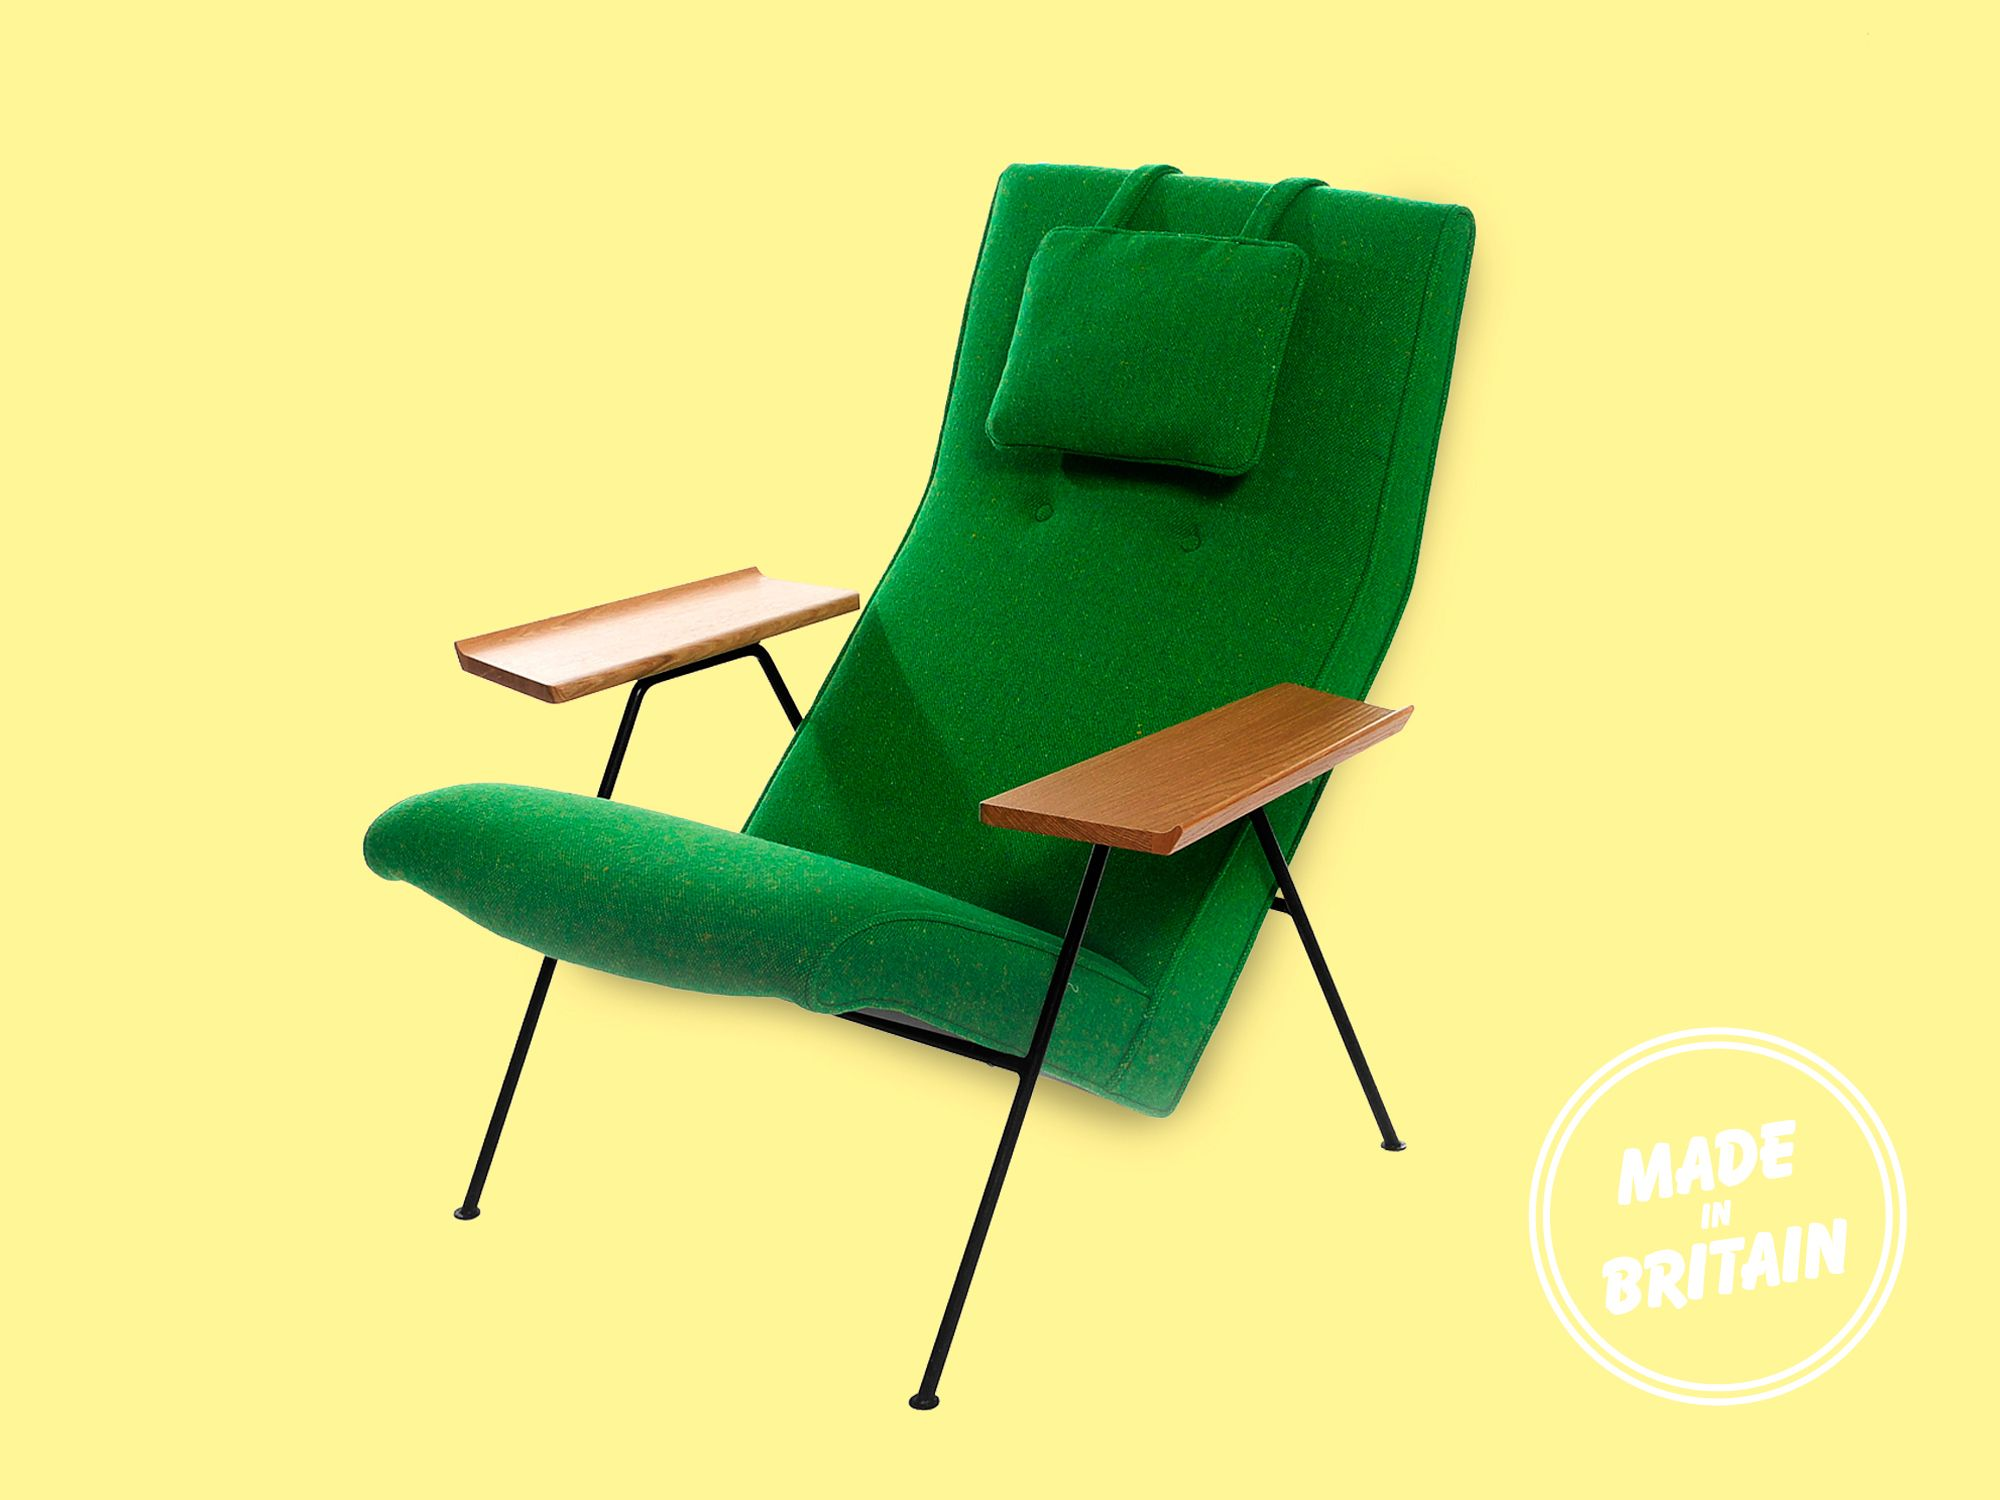 The Take A Load Off Robin Day Chair